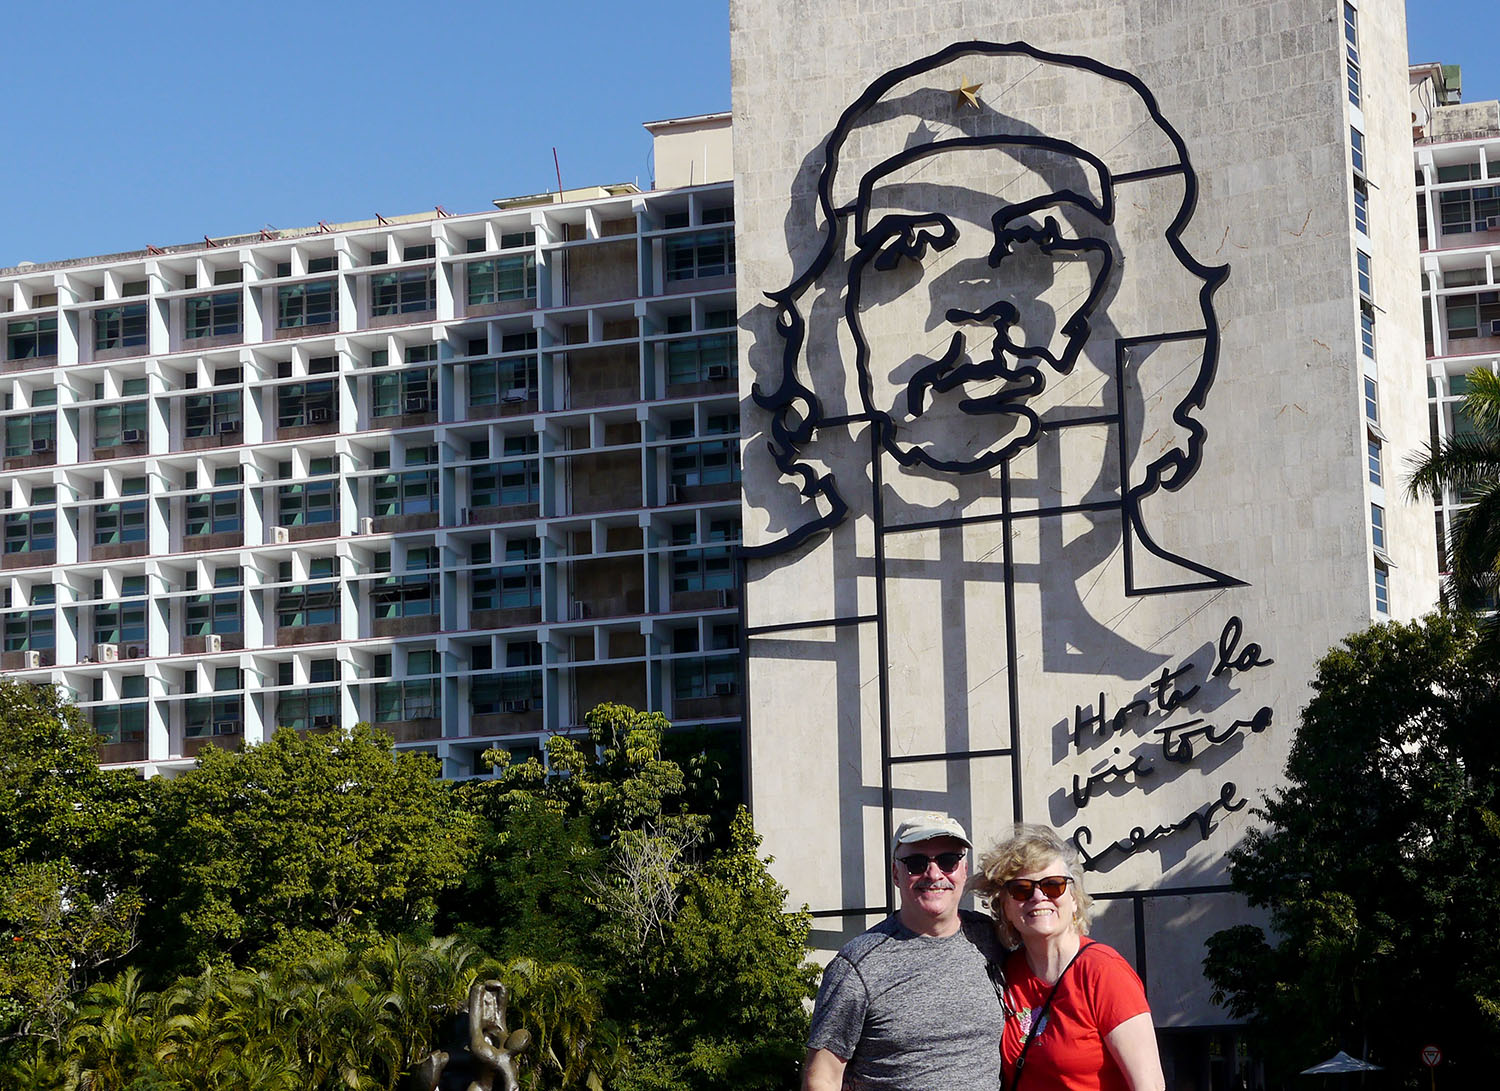 A couple poses in front of building with the image of Che Guevara.